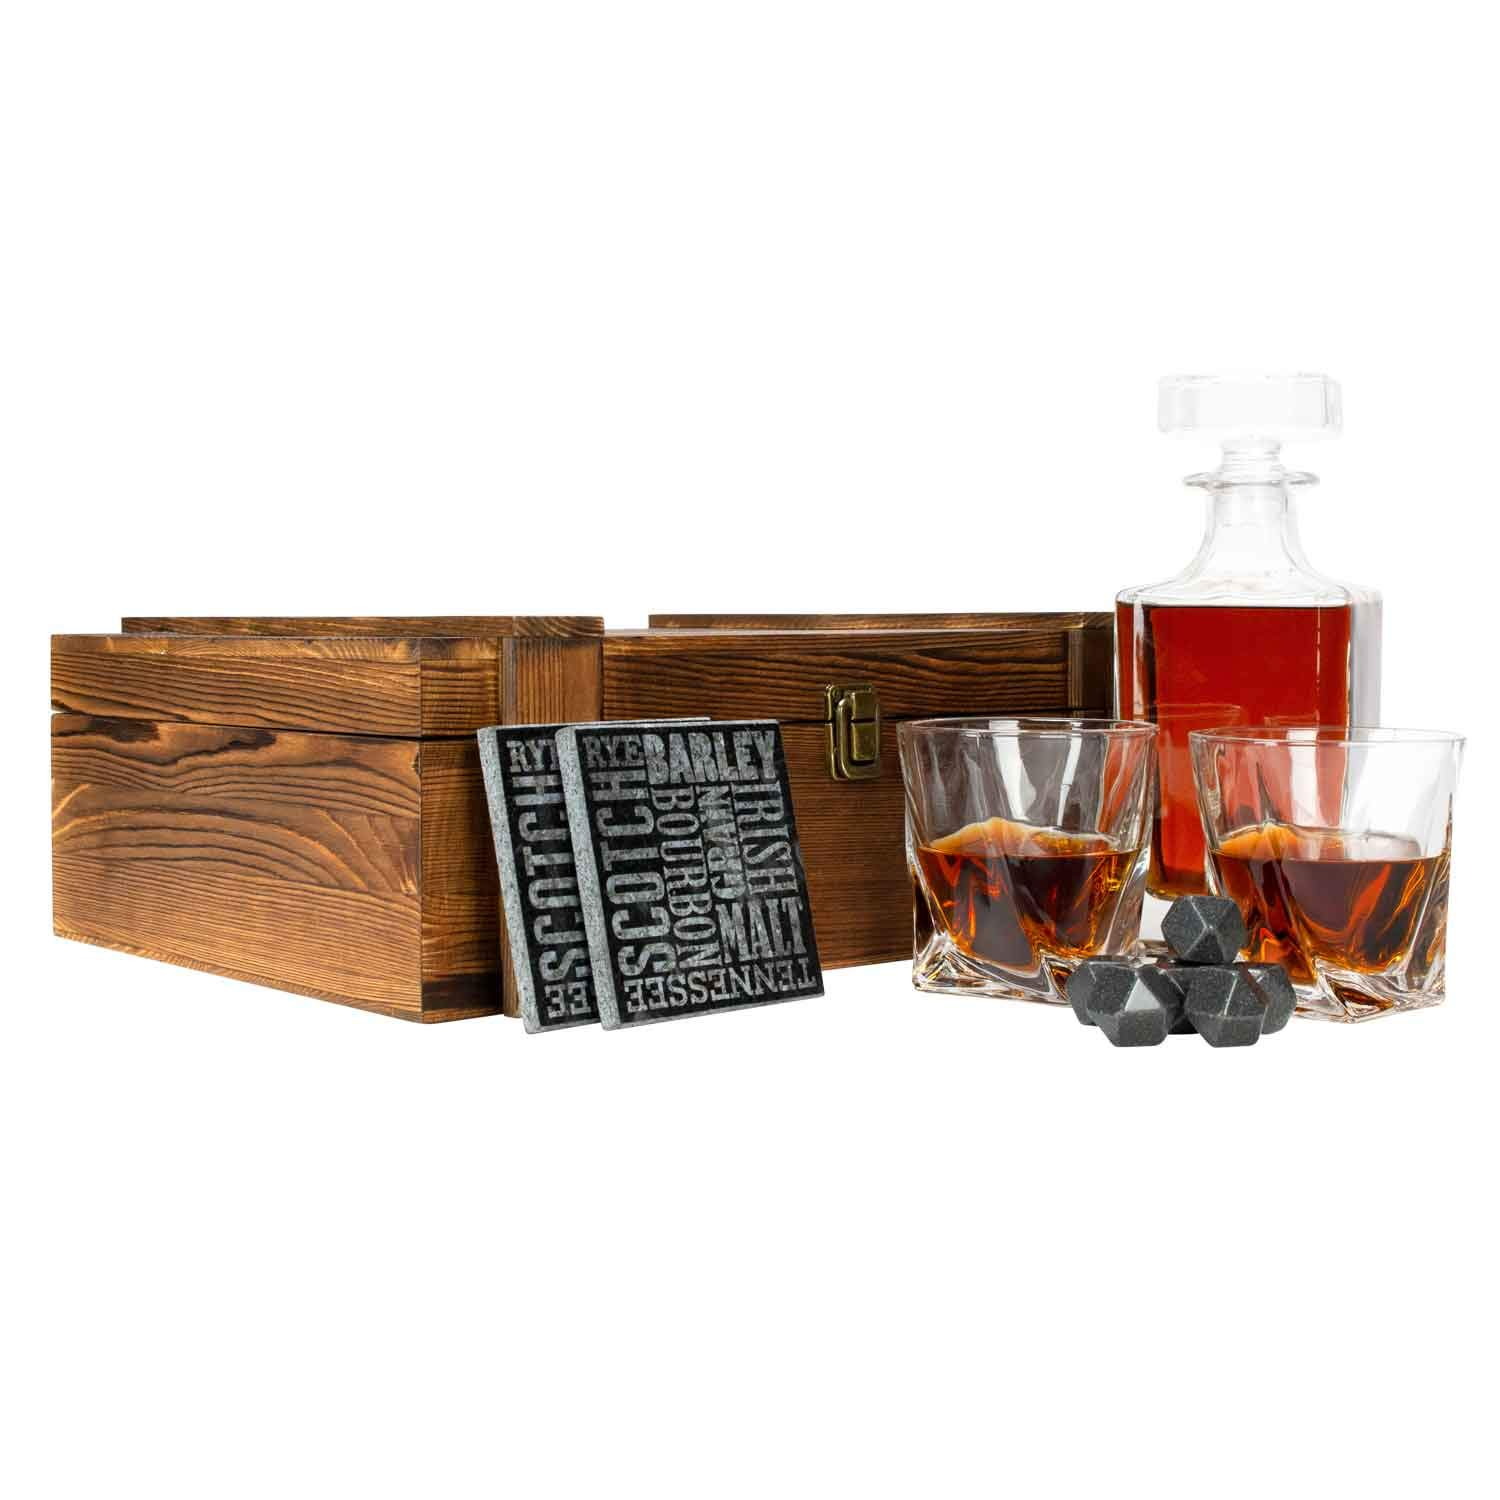 Atterstone Crate Whiskey Box Set with Premium Decanter and 2 Swirl Glasses, Includes 9 Chilling Stones and 2 Dark Stone Coasters, Encased in Polished Wood Box Great for Holiday and Wedding Gifts by Atterstone (Image #4)